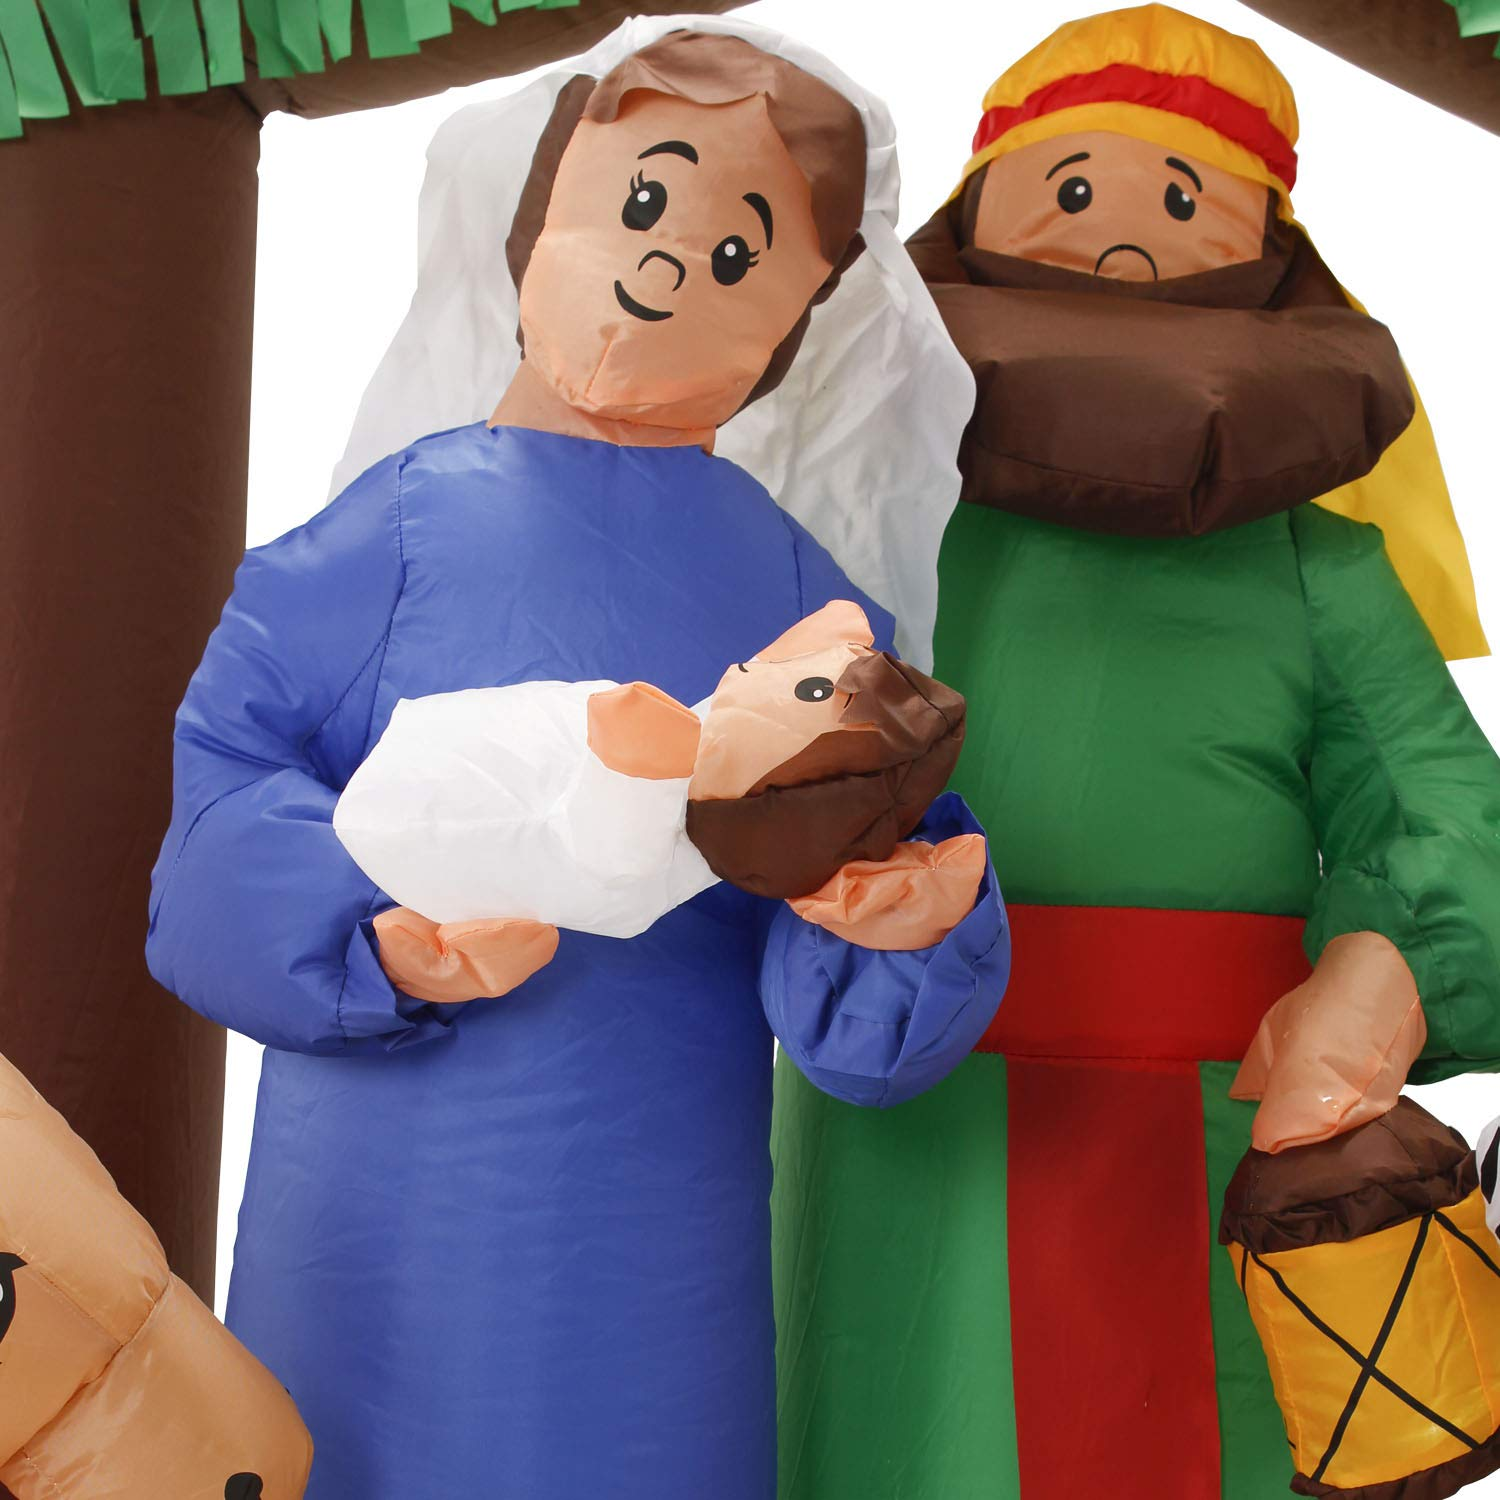 TCP Global Christmas Masters 6 Foot Wide Inflatable Holy Nativity Scene LED Lights Indoor Outdoor Yard Lawn Decoration - Mary, Joseph, Baby Jesus Xmas Holiday Party Blow Up Display by TCP Global (Image #7)